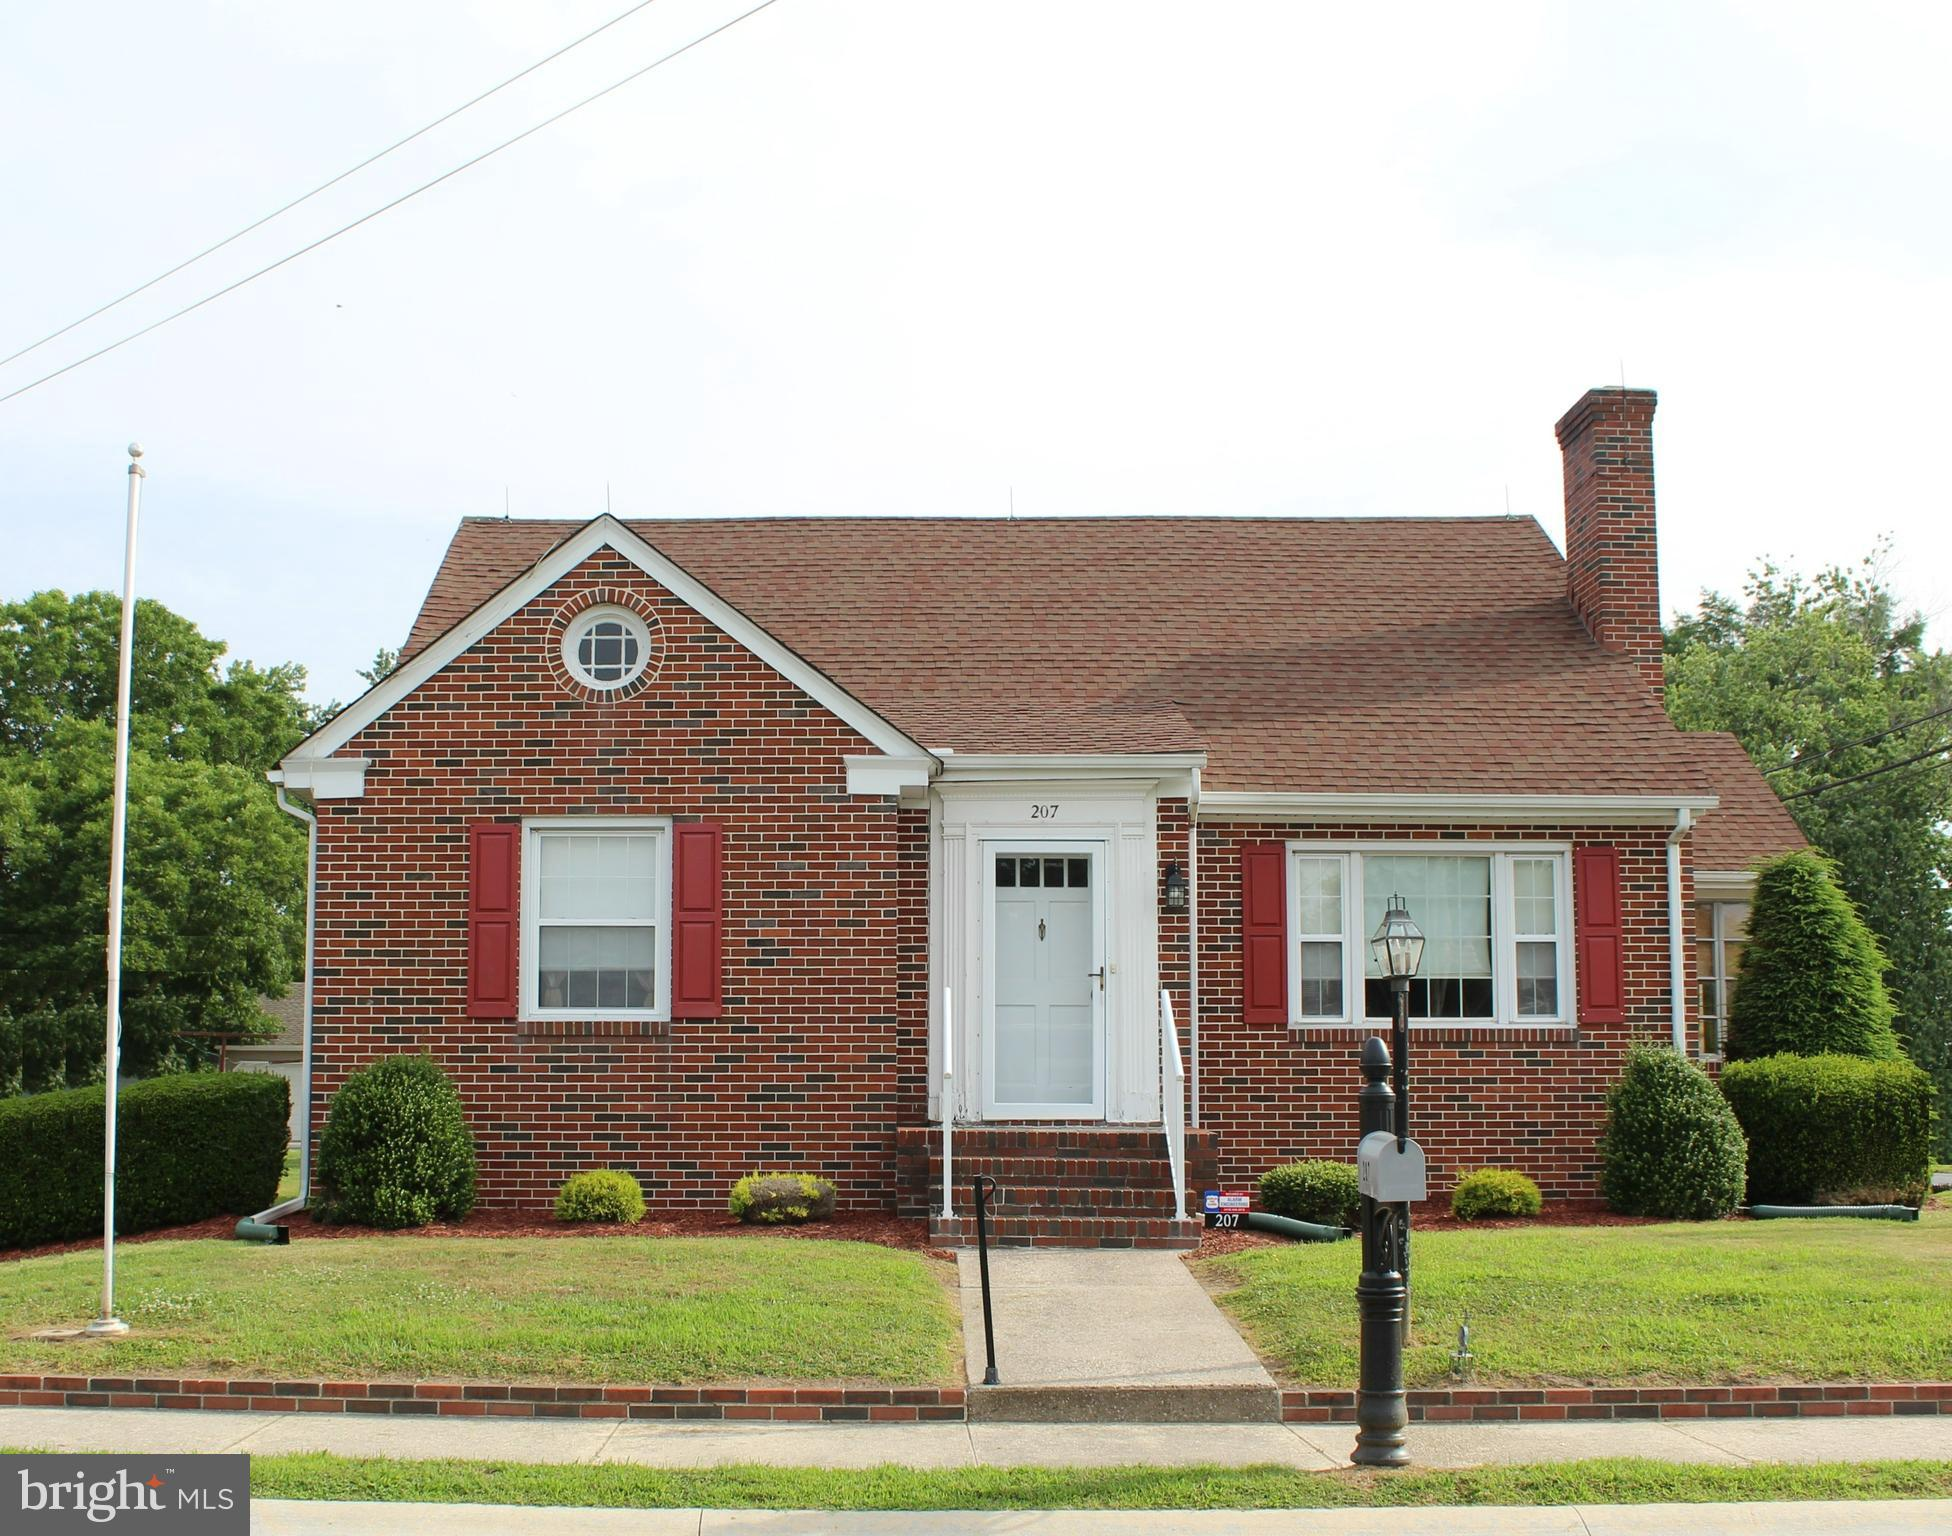 BEST AND FINAL OFFERS DUE BY SUNDAY 7/18 AT 5PM.  This charming 4 bedroom home features a spacious living room with fireplace, formal dining room, kitchen with lots of cabinet storage, 2 first floor bedrooms, 2 second floor bedrooms, a large laundry room/mudroom, a 3 season porch, an unfinished basement, a patio and a detached oversized 2 car garage.